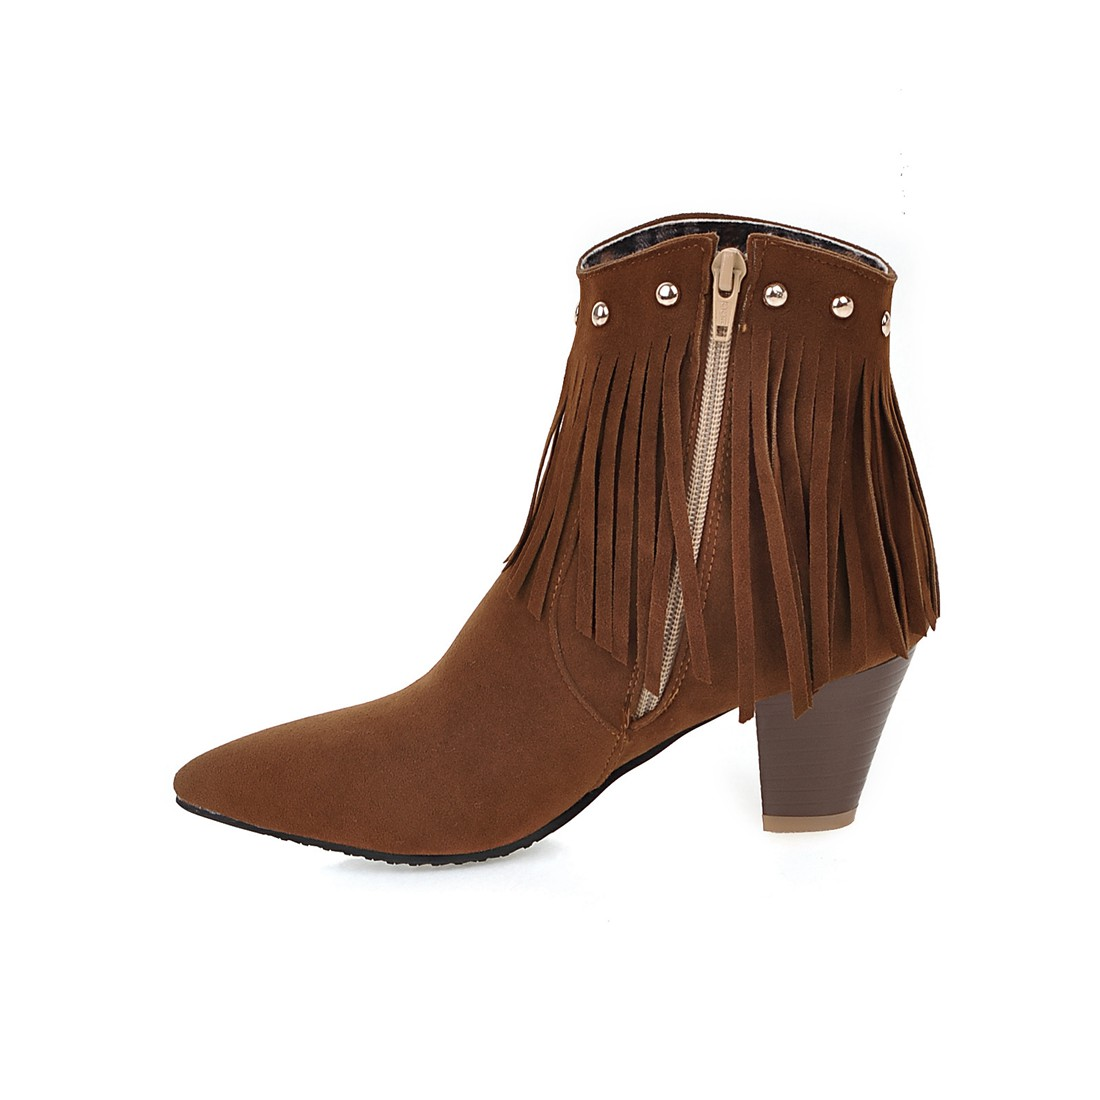 New casual ankle Boots thick high heels boots woman poined toe Women's tassel Boot ladies shoes large size 34-43